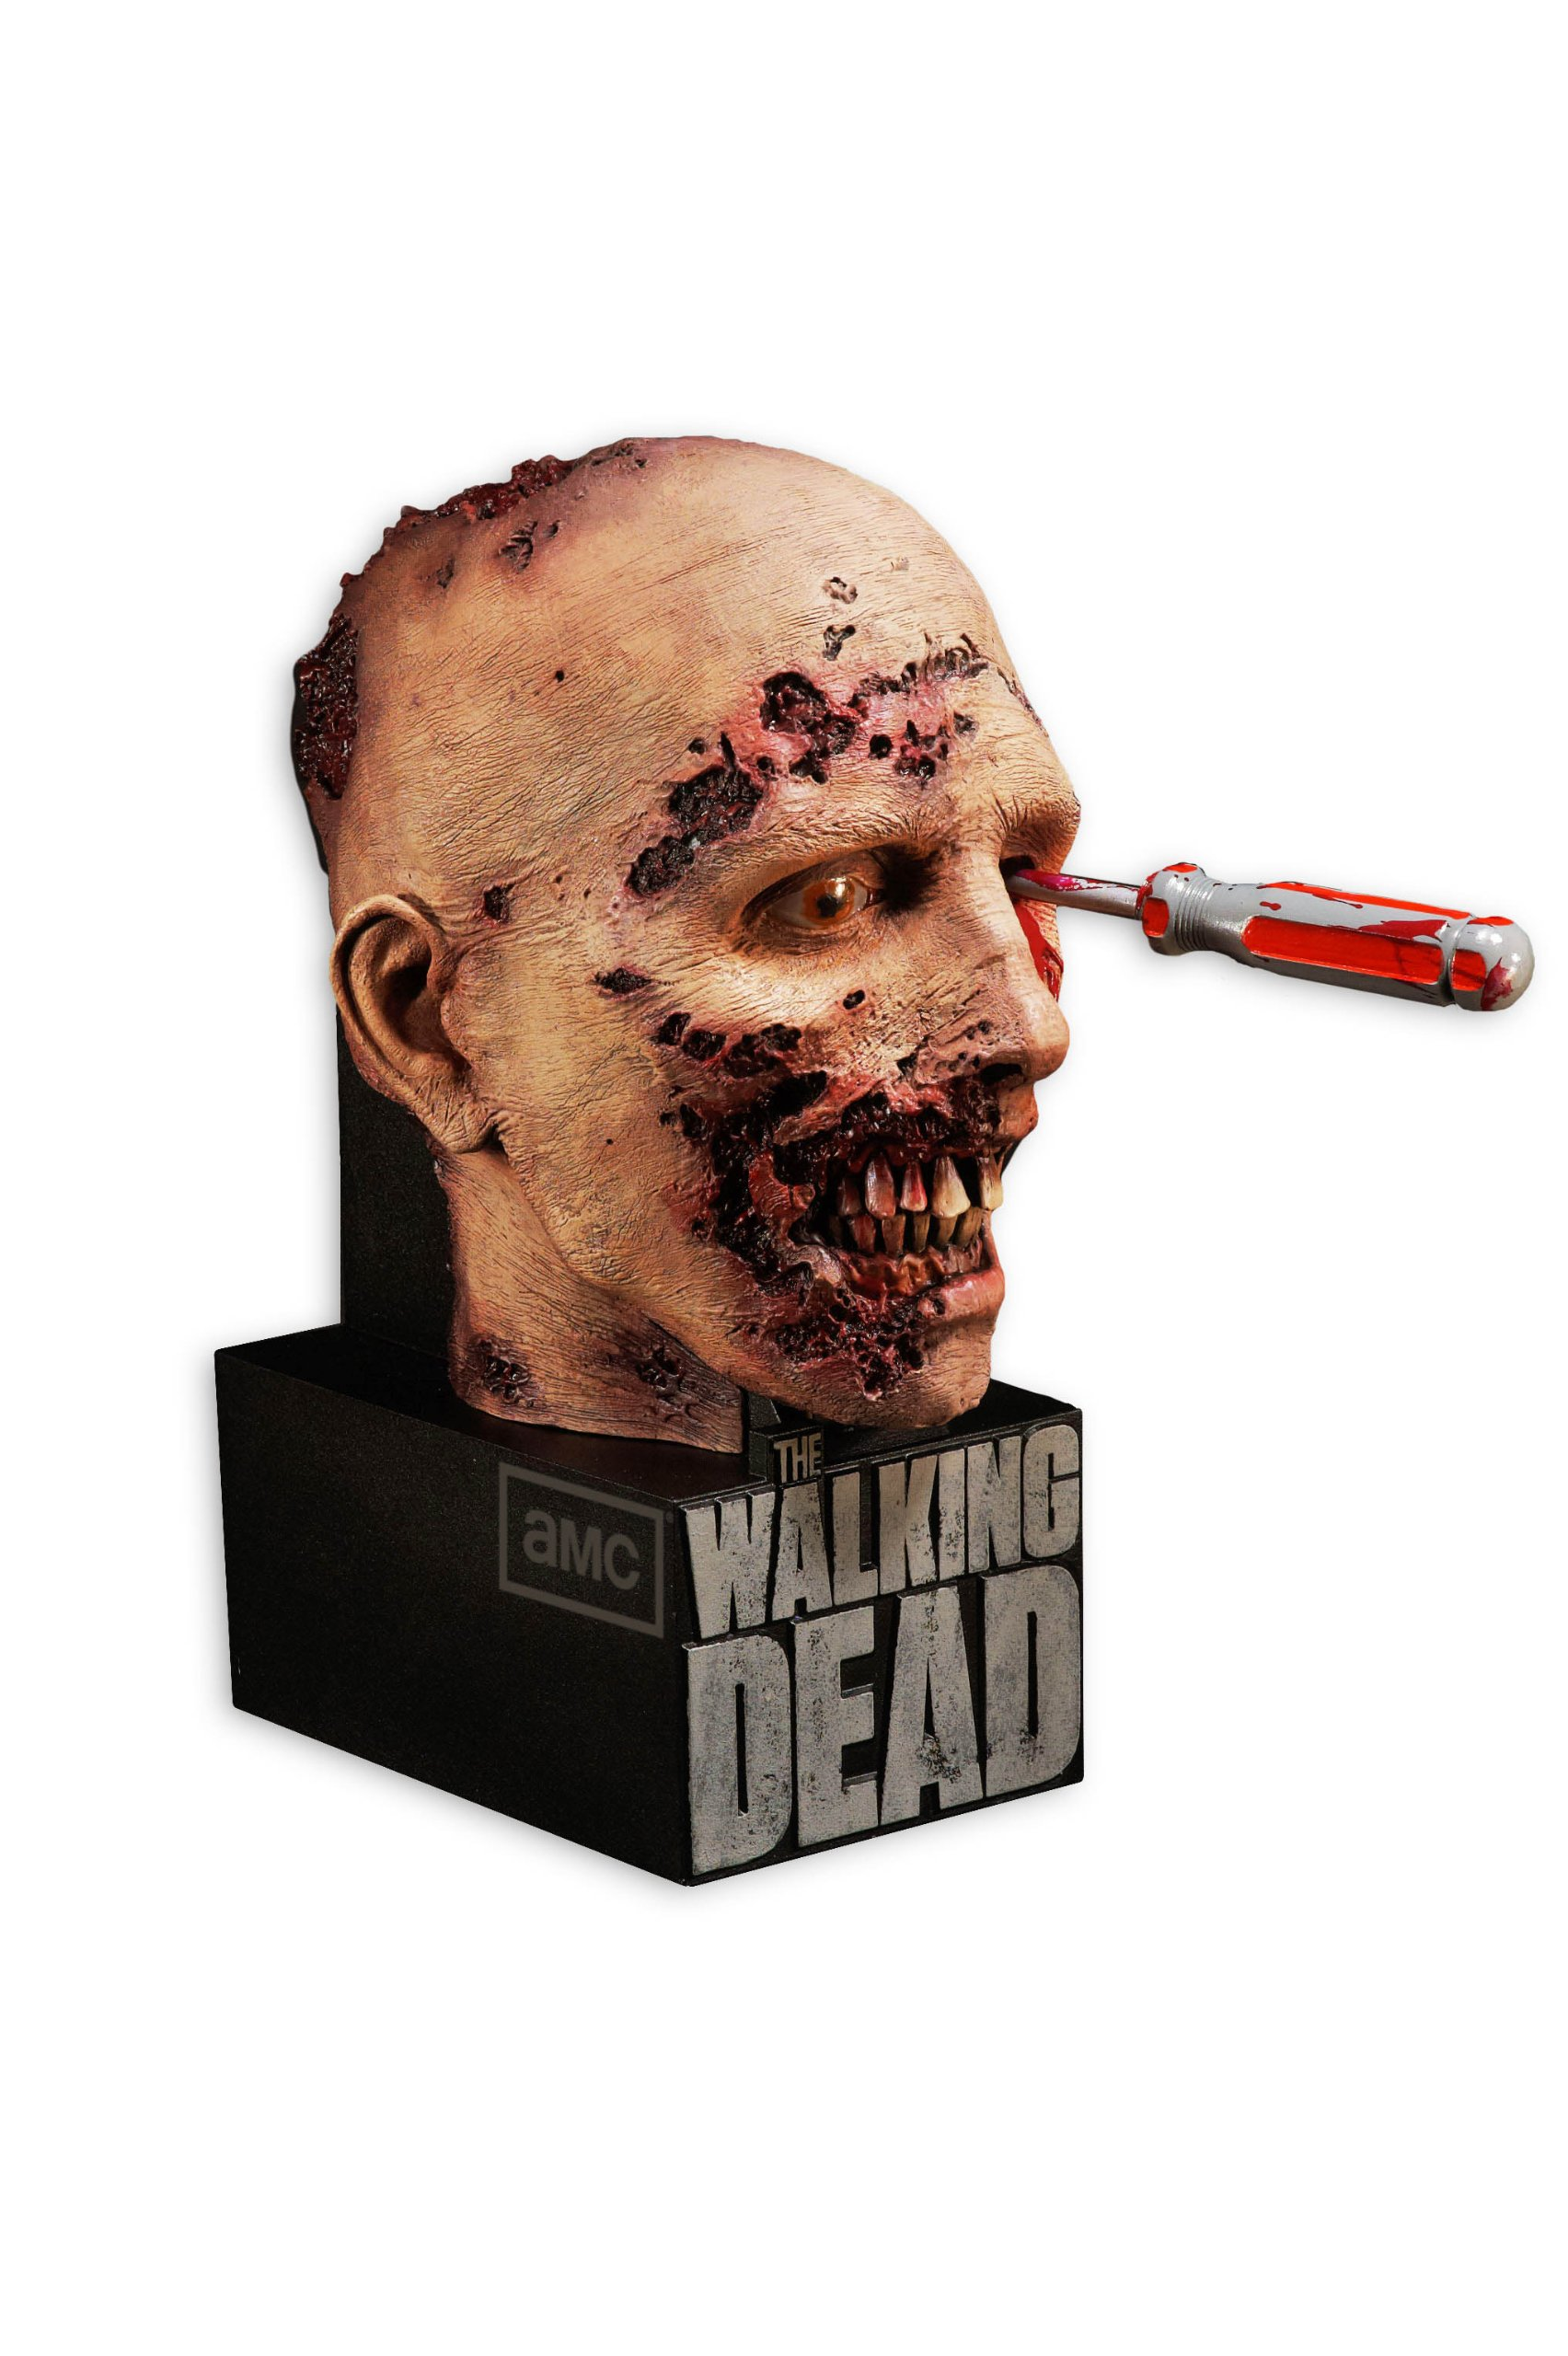 The Walking Dead: Season 2 (Limited Edition) [Blu-ray] by Anchor Bay Entertainment